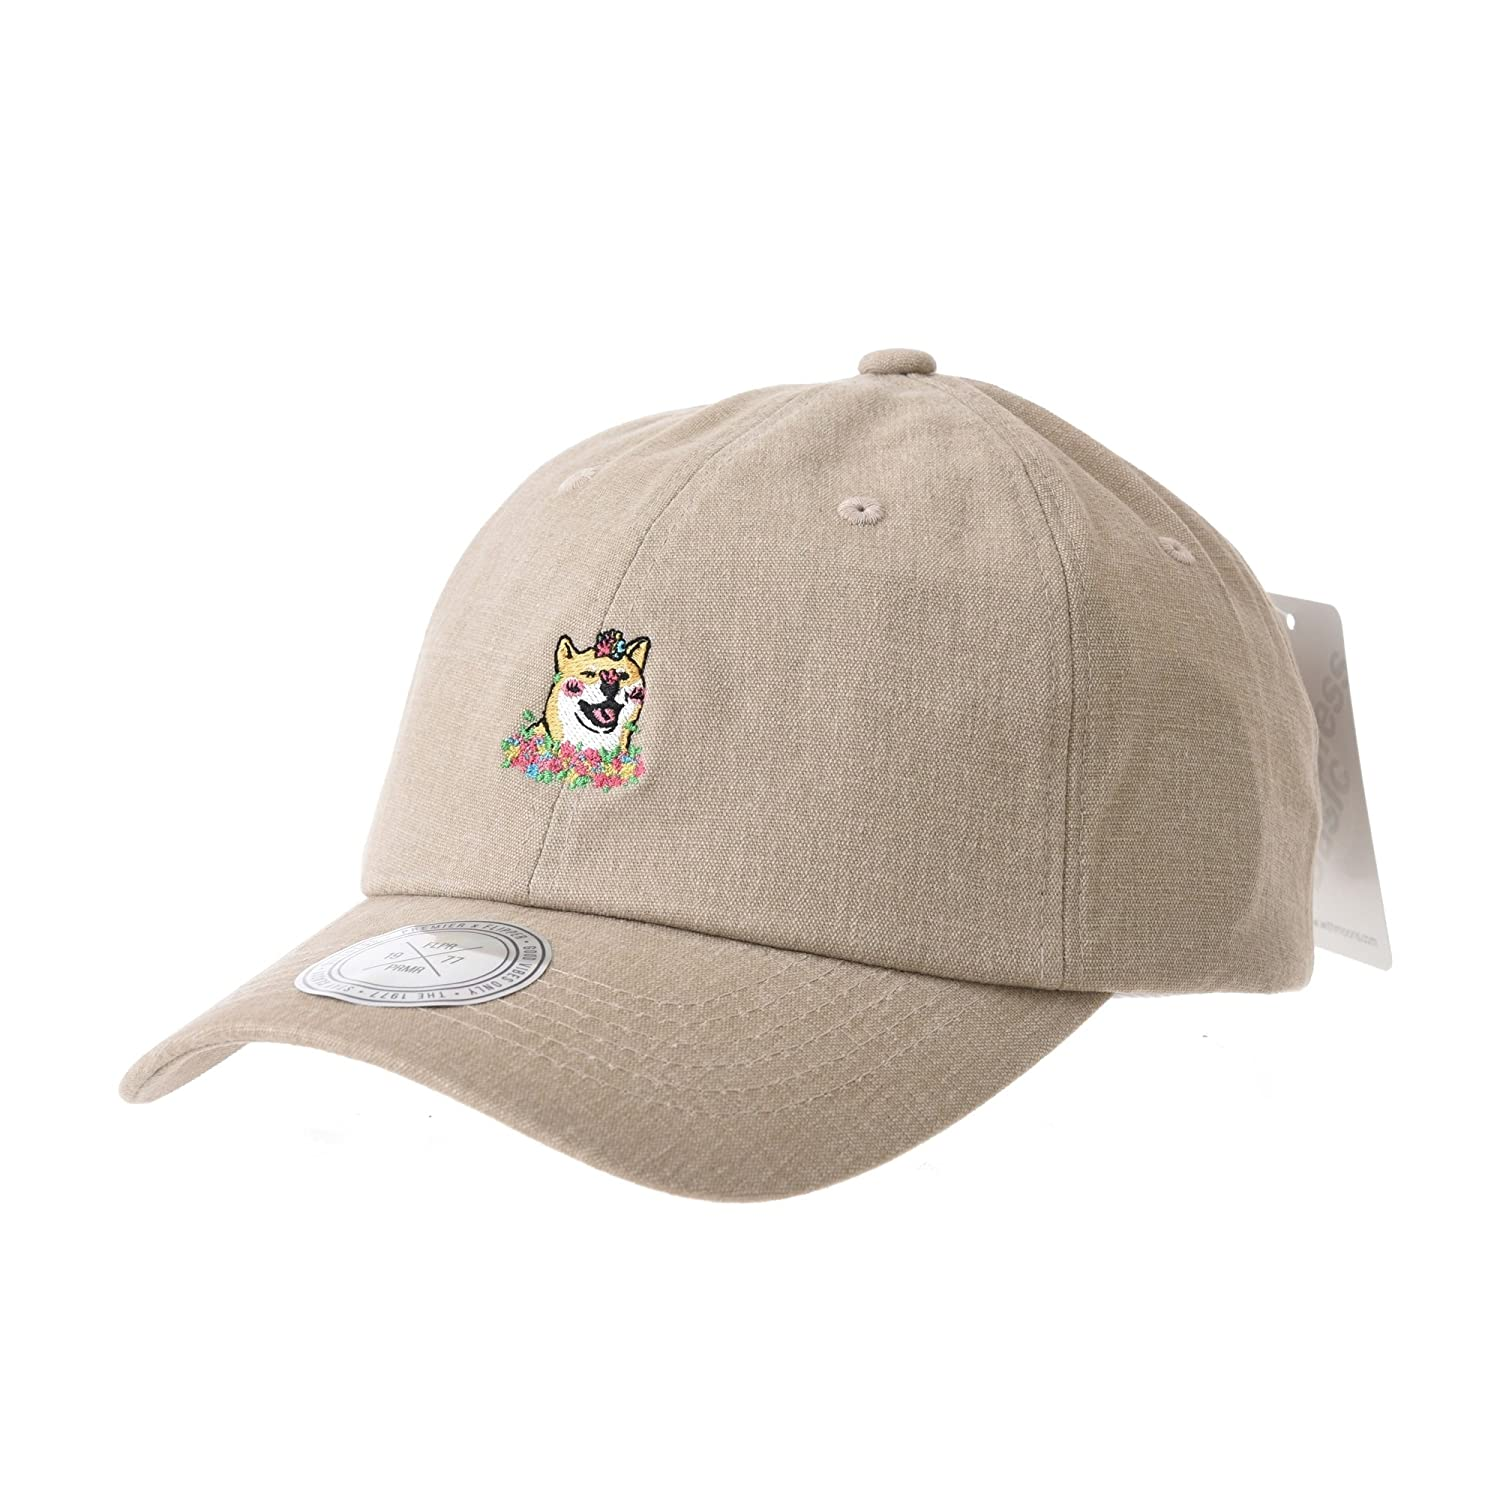 WITHMOONS Baseball Cap Dog Embroidery Shiba Inu Doge Hachi-ko AL1896  (Beige) at Amazon Women s Clothing store  ce3ae5e13fe